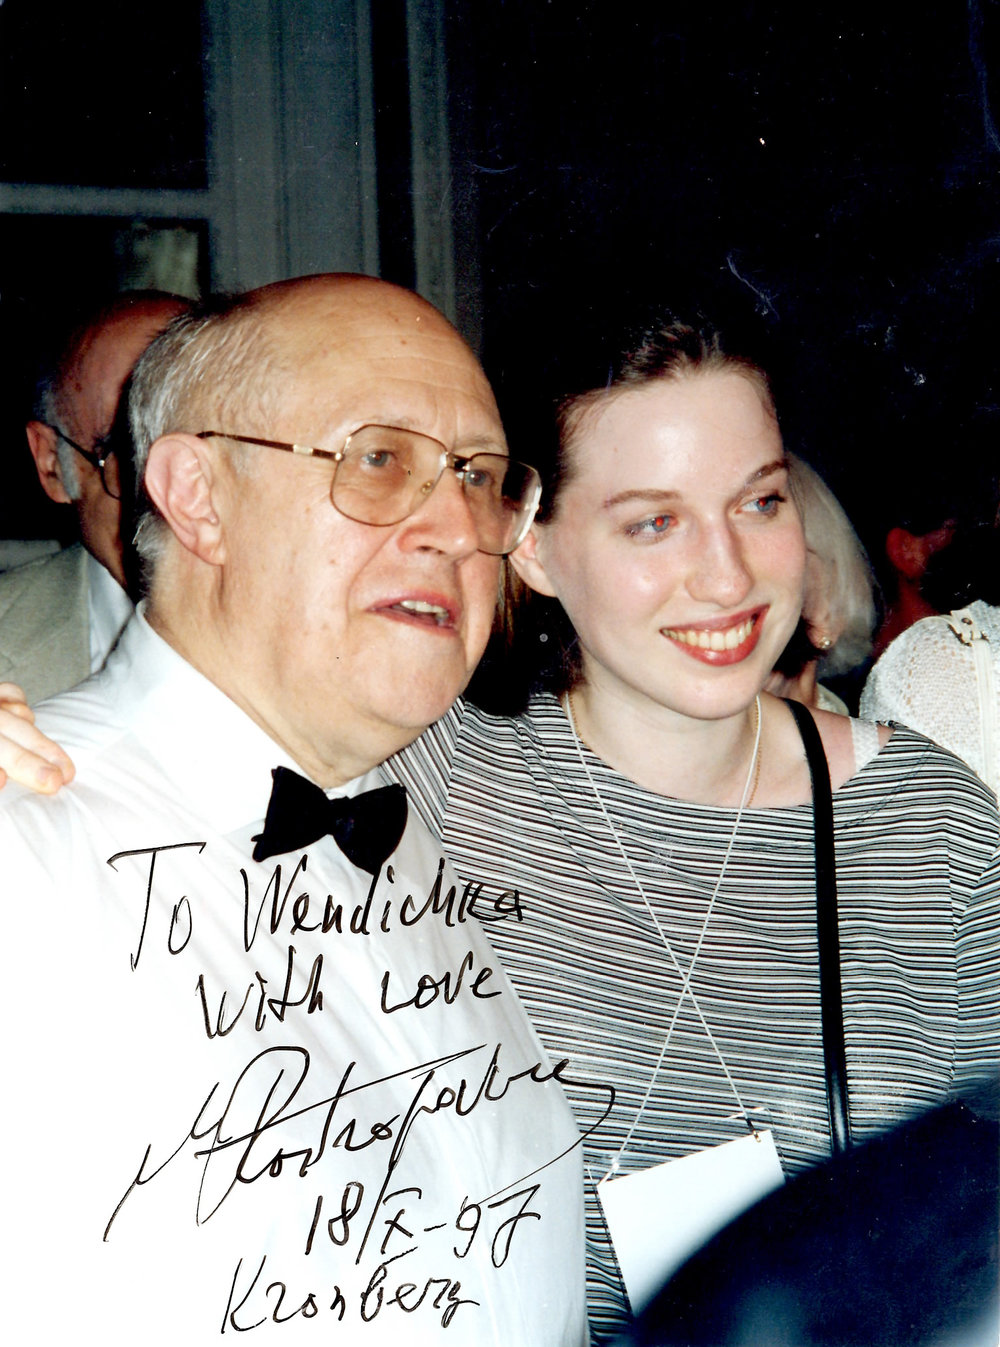 Rostropovich and myself in Russia